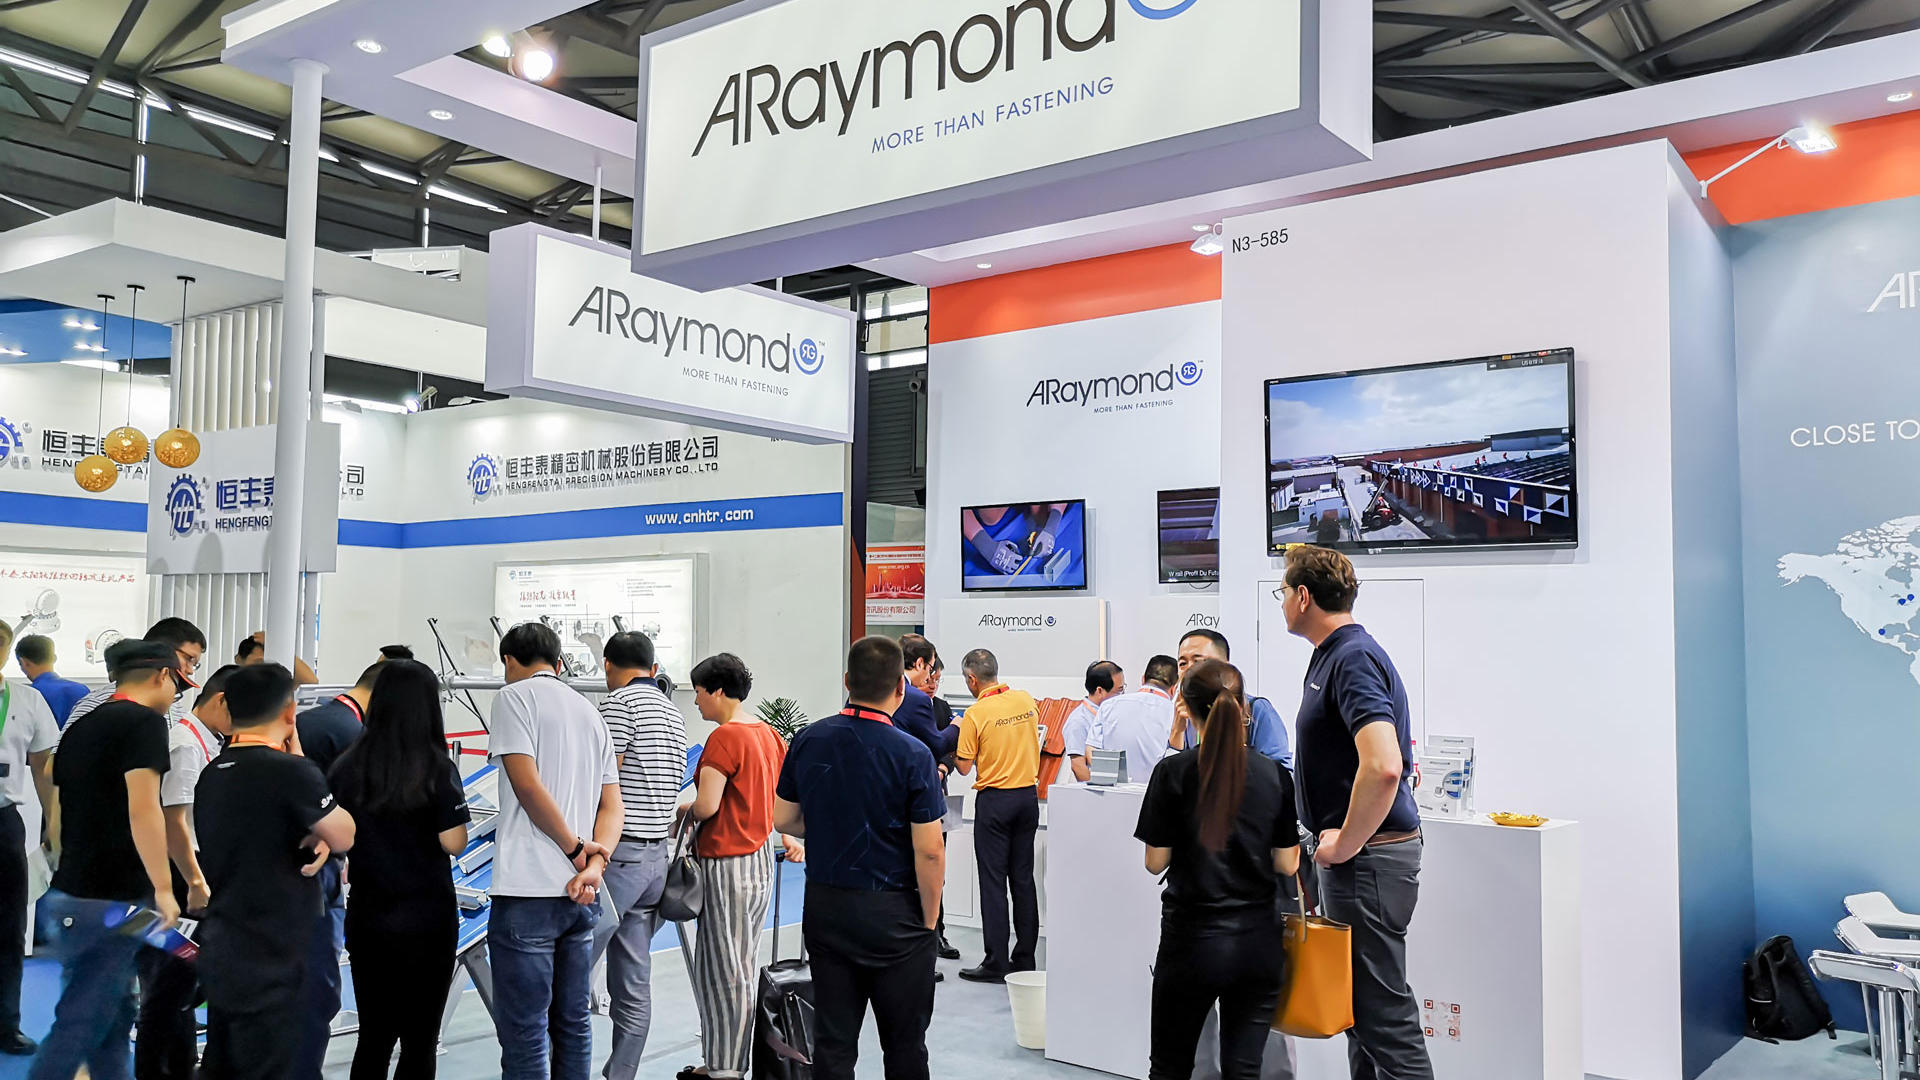 Agenda: The Solar Show Africa 2019 - ARaymond - Energies